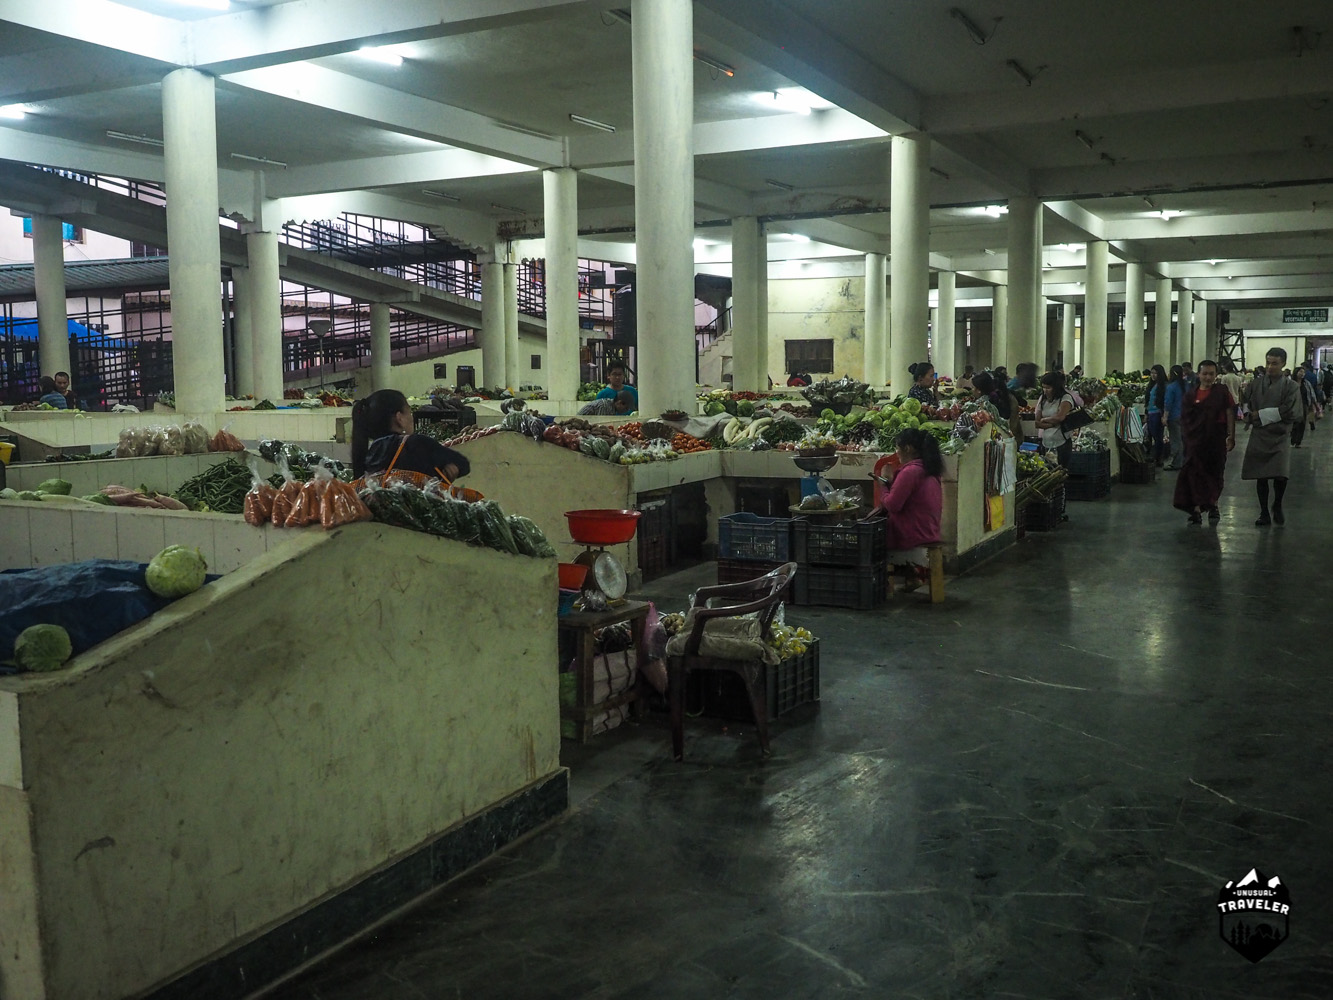 Just a small part of the Farmers market